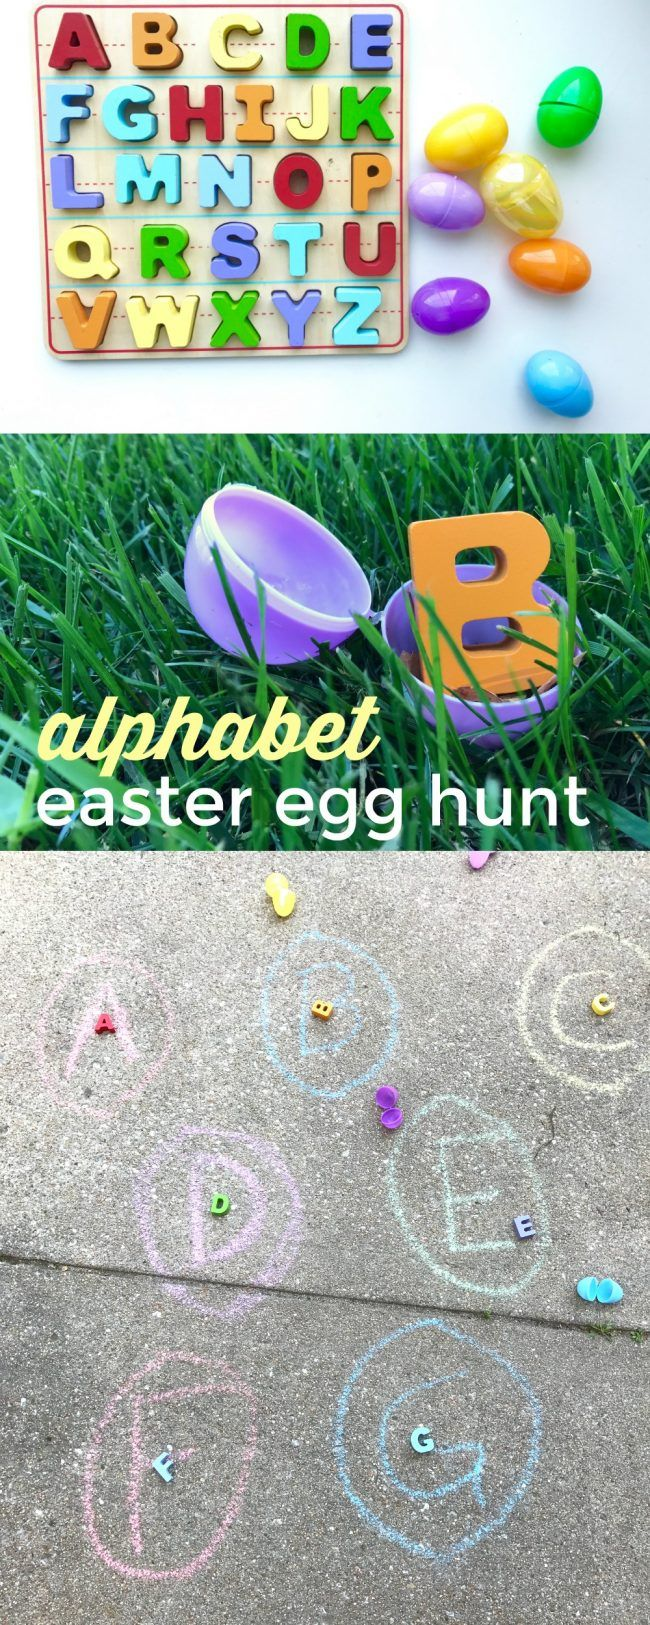 246 best Spring holidays images on Pinterest | Easter, Baby books ...